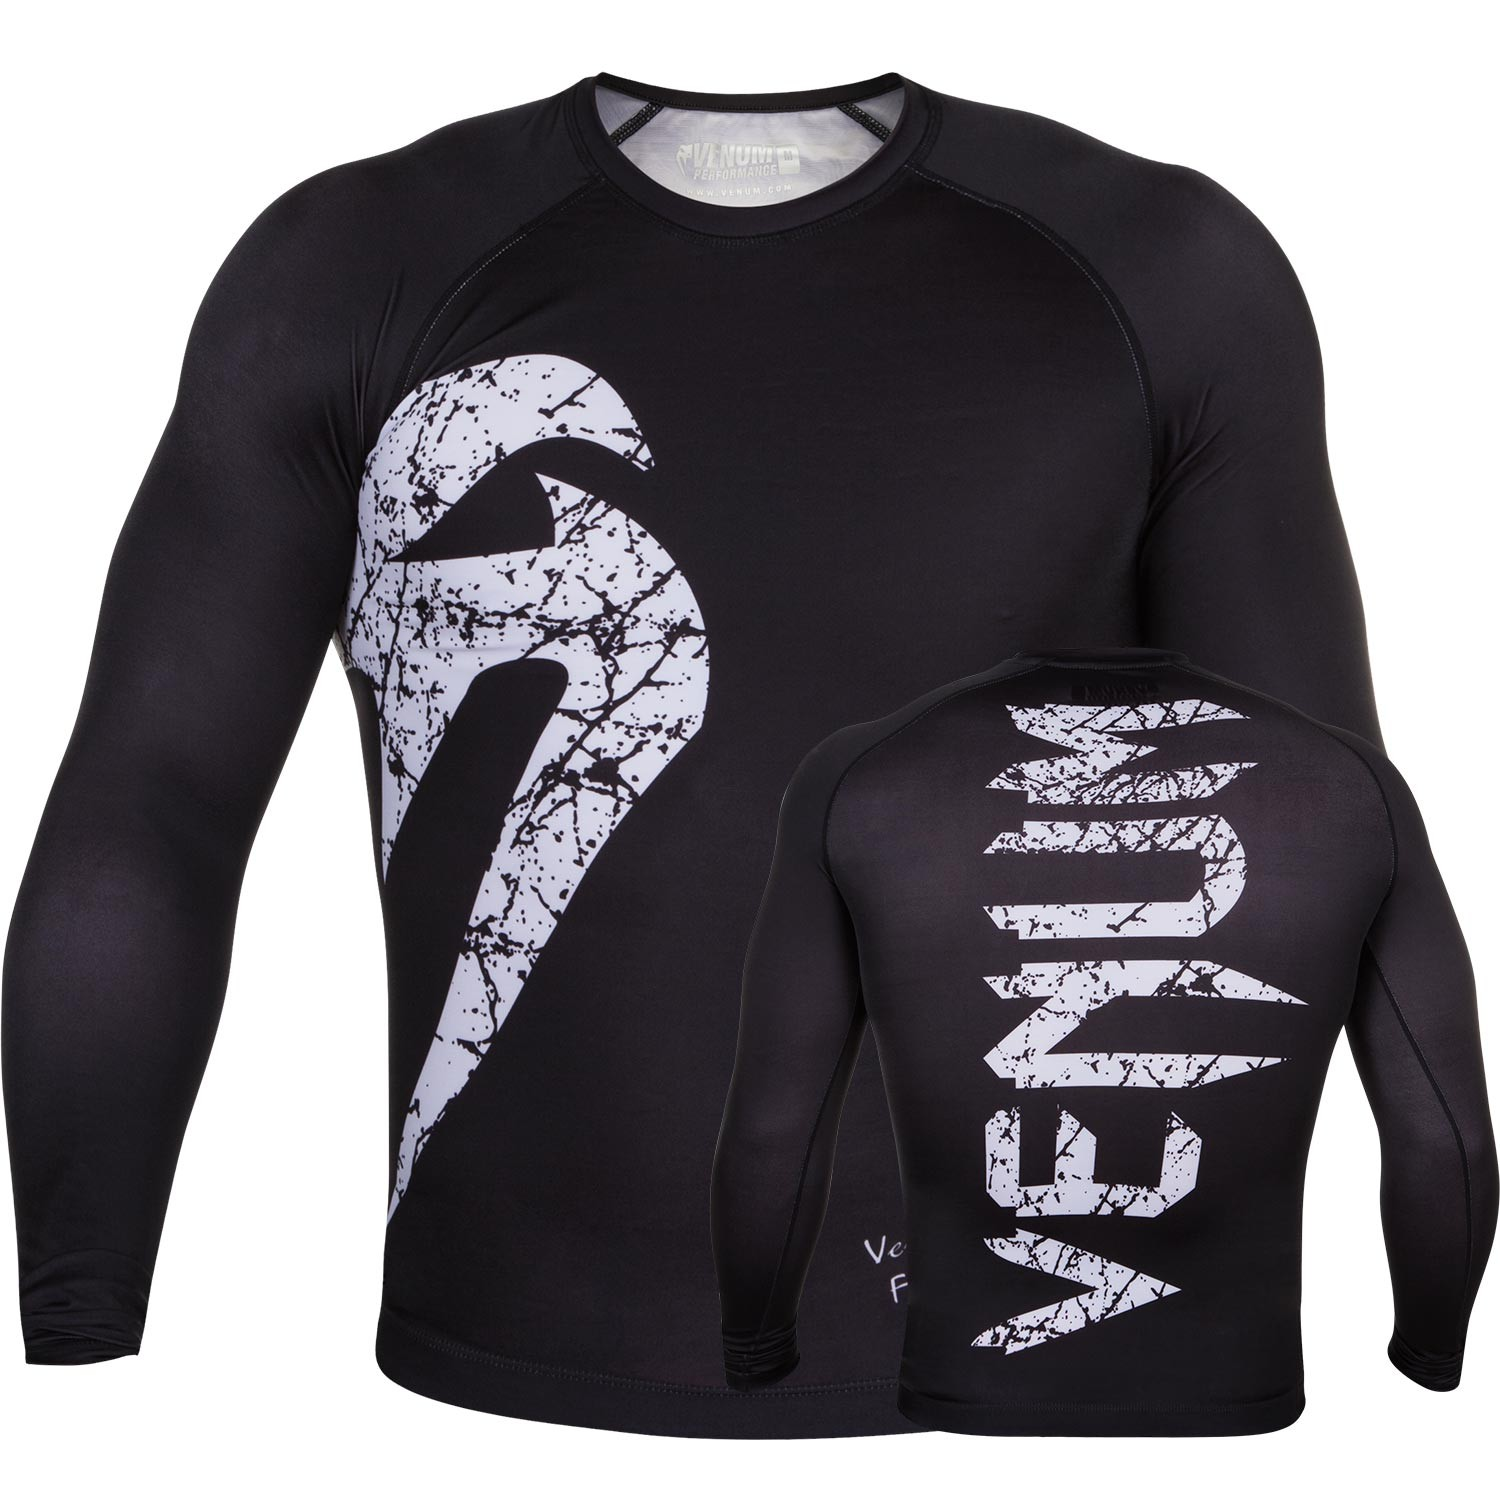 Рашгард Venum Original Giant Black/White L/S<br>Вес кг: 200.00000000;